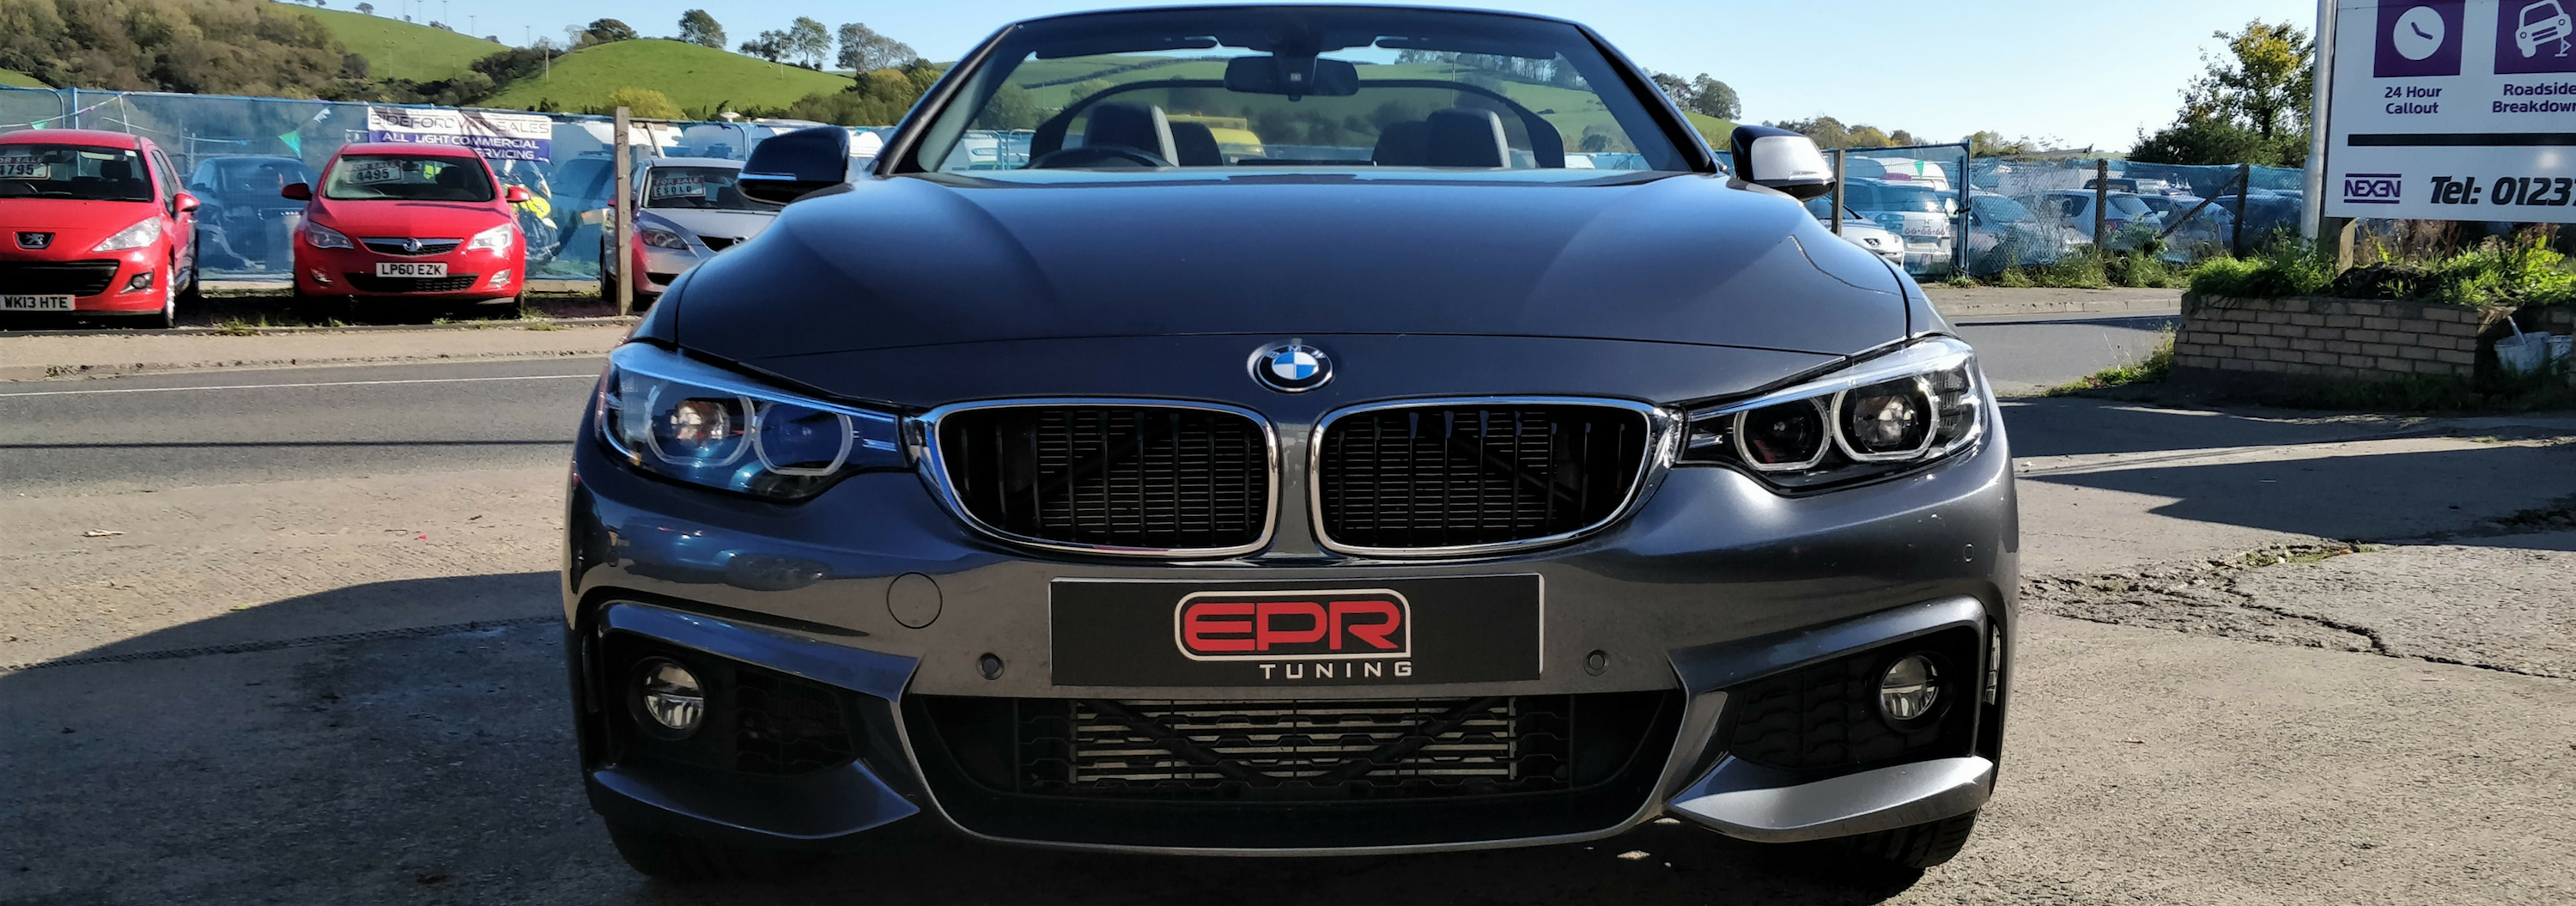 xHP Gearbox Tuning | BMW Gearbox Tuning | Remapping